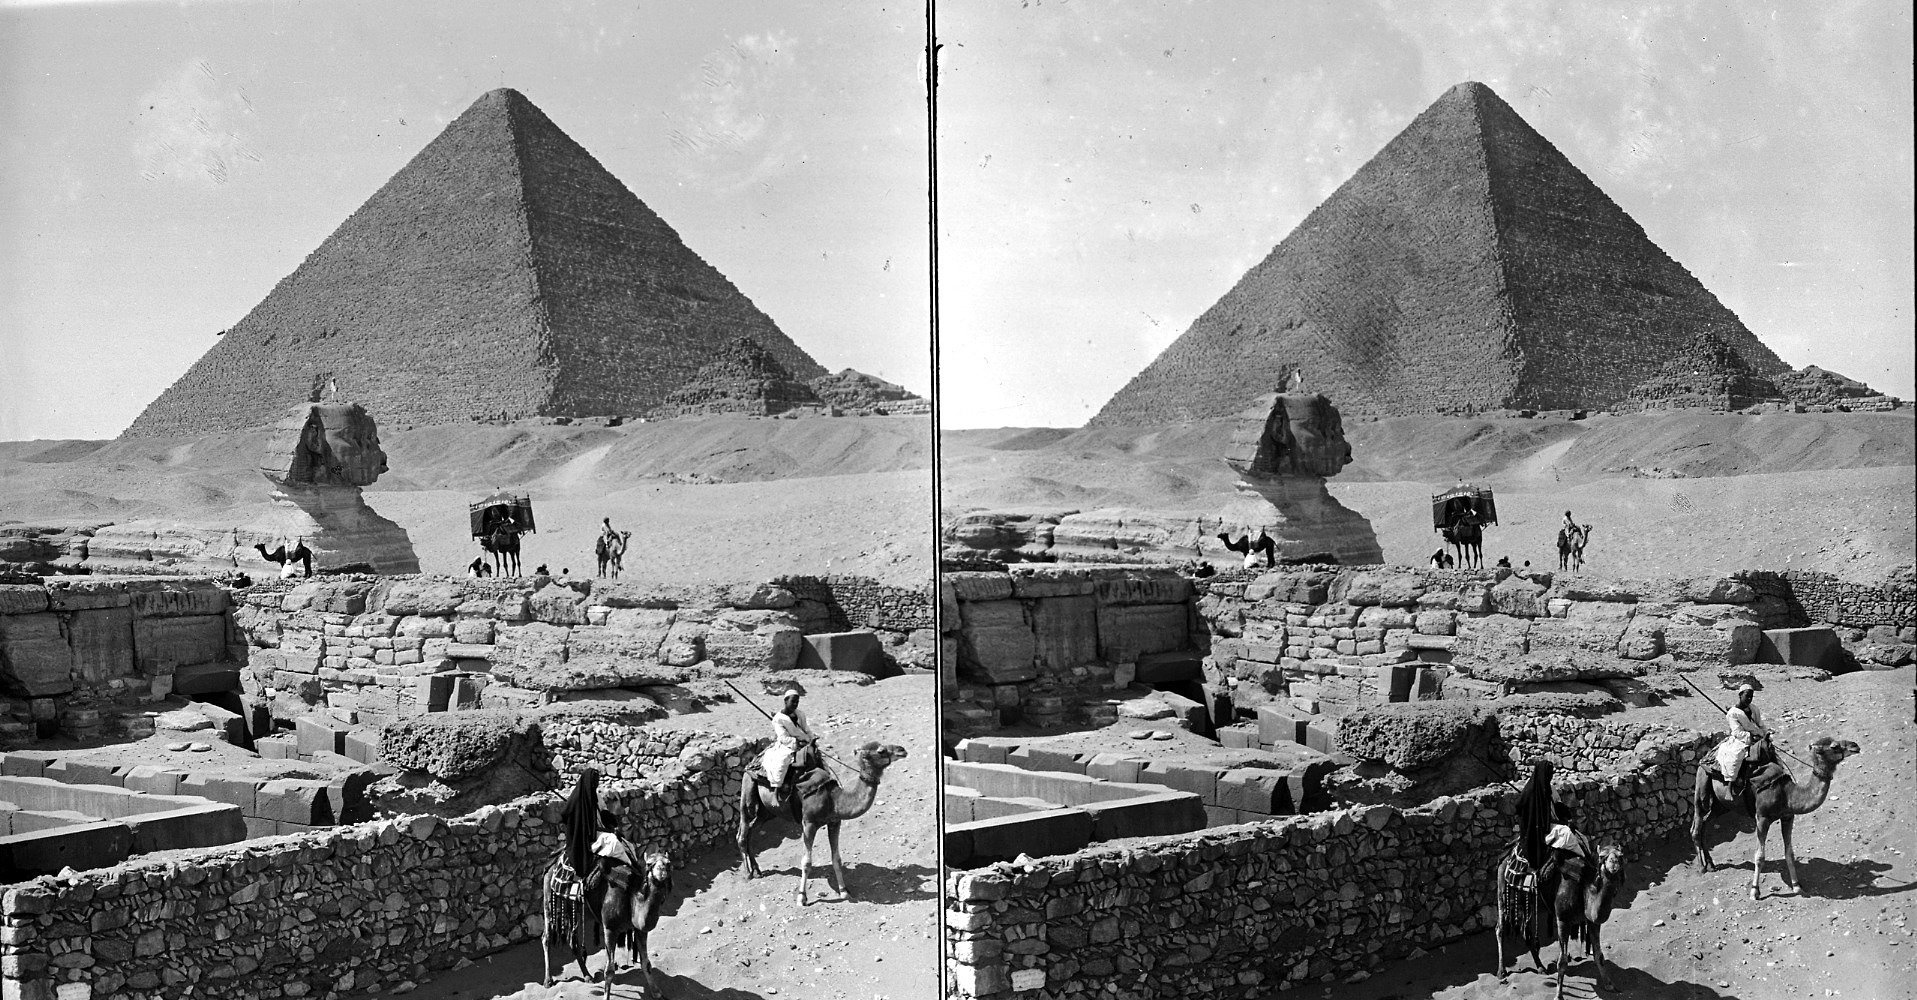 images for Pyramids and Sphinx, Gizeh, Egypt. Active no. 954 : stereo interpositive